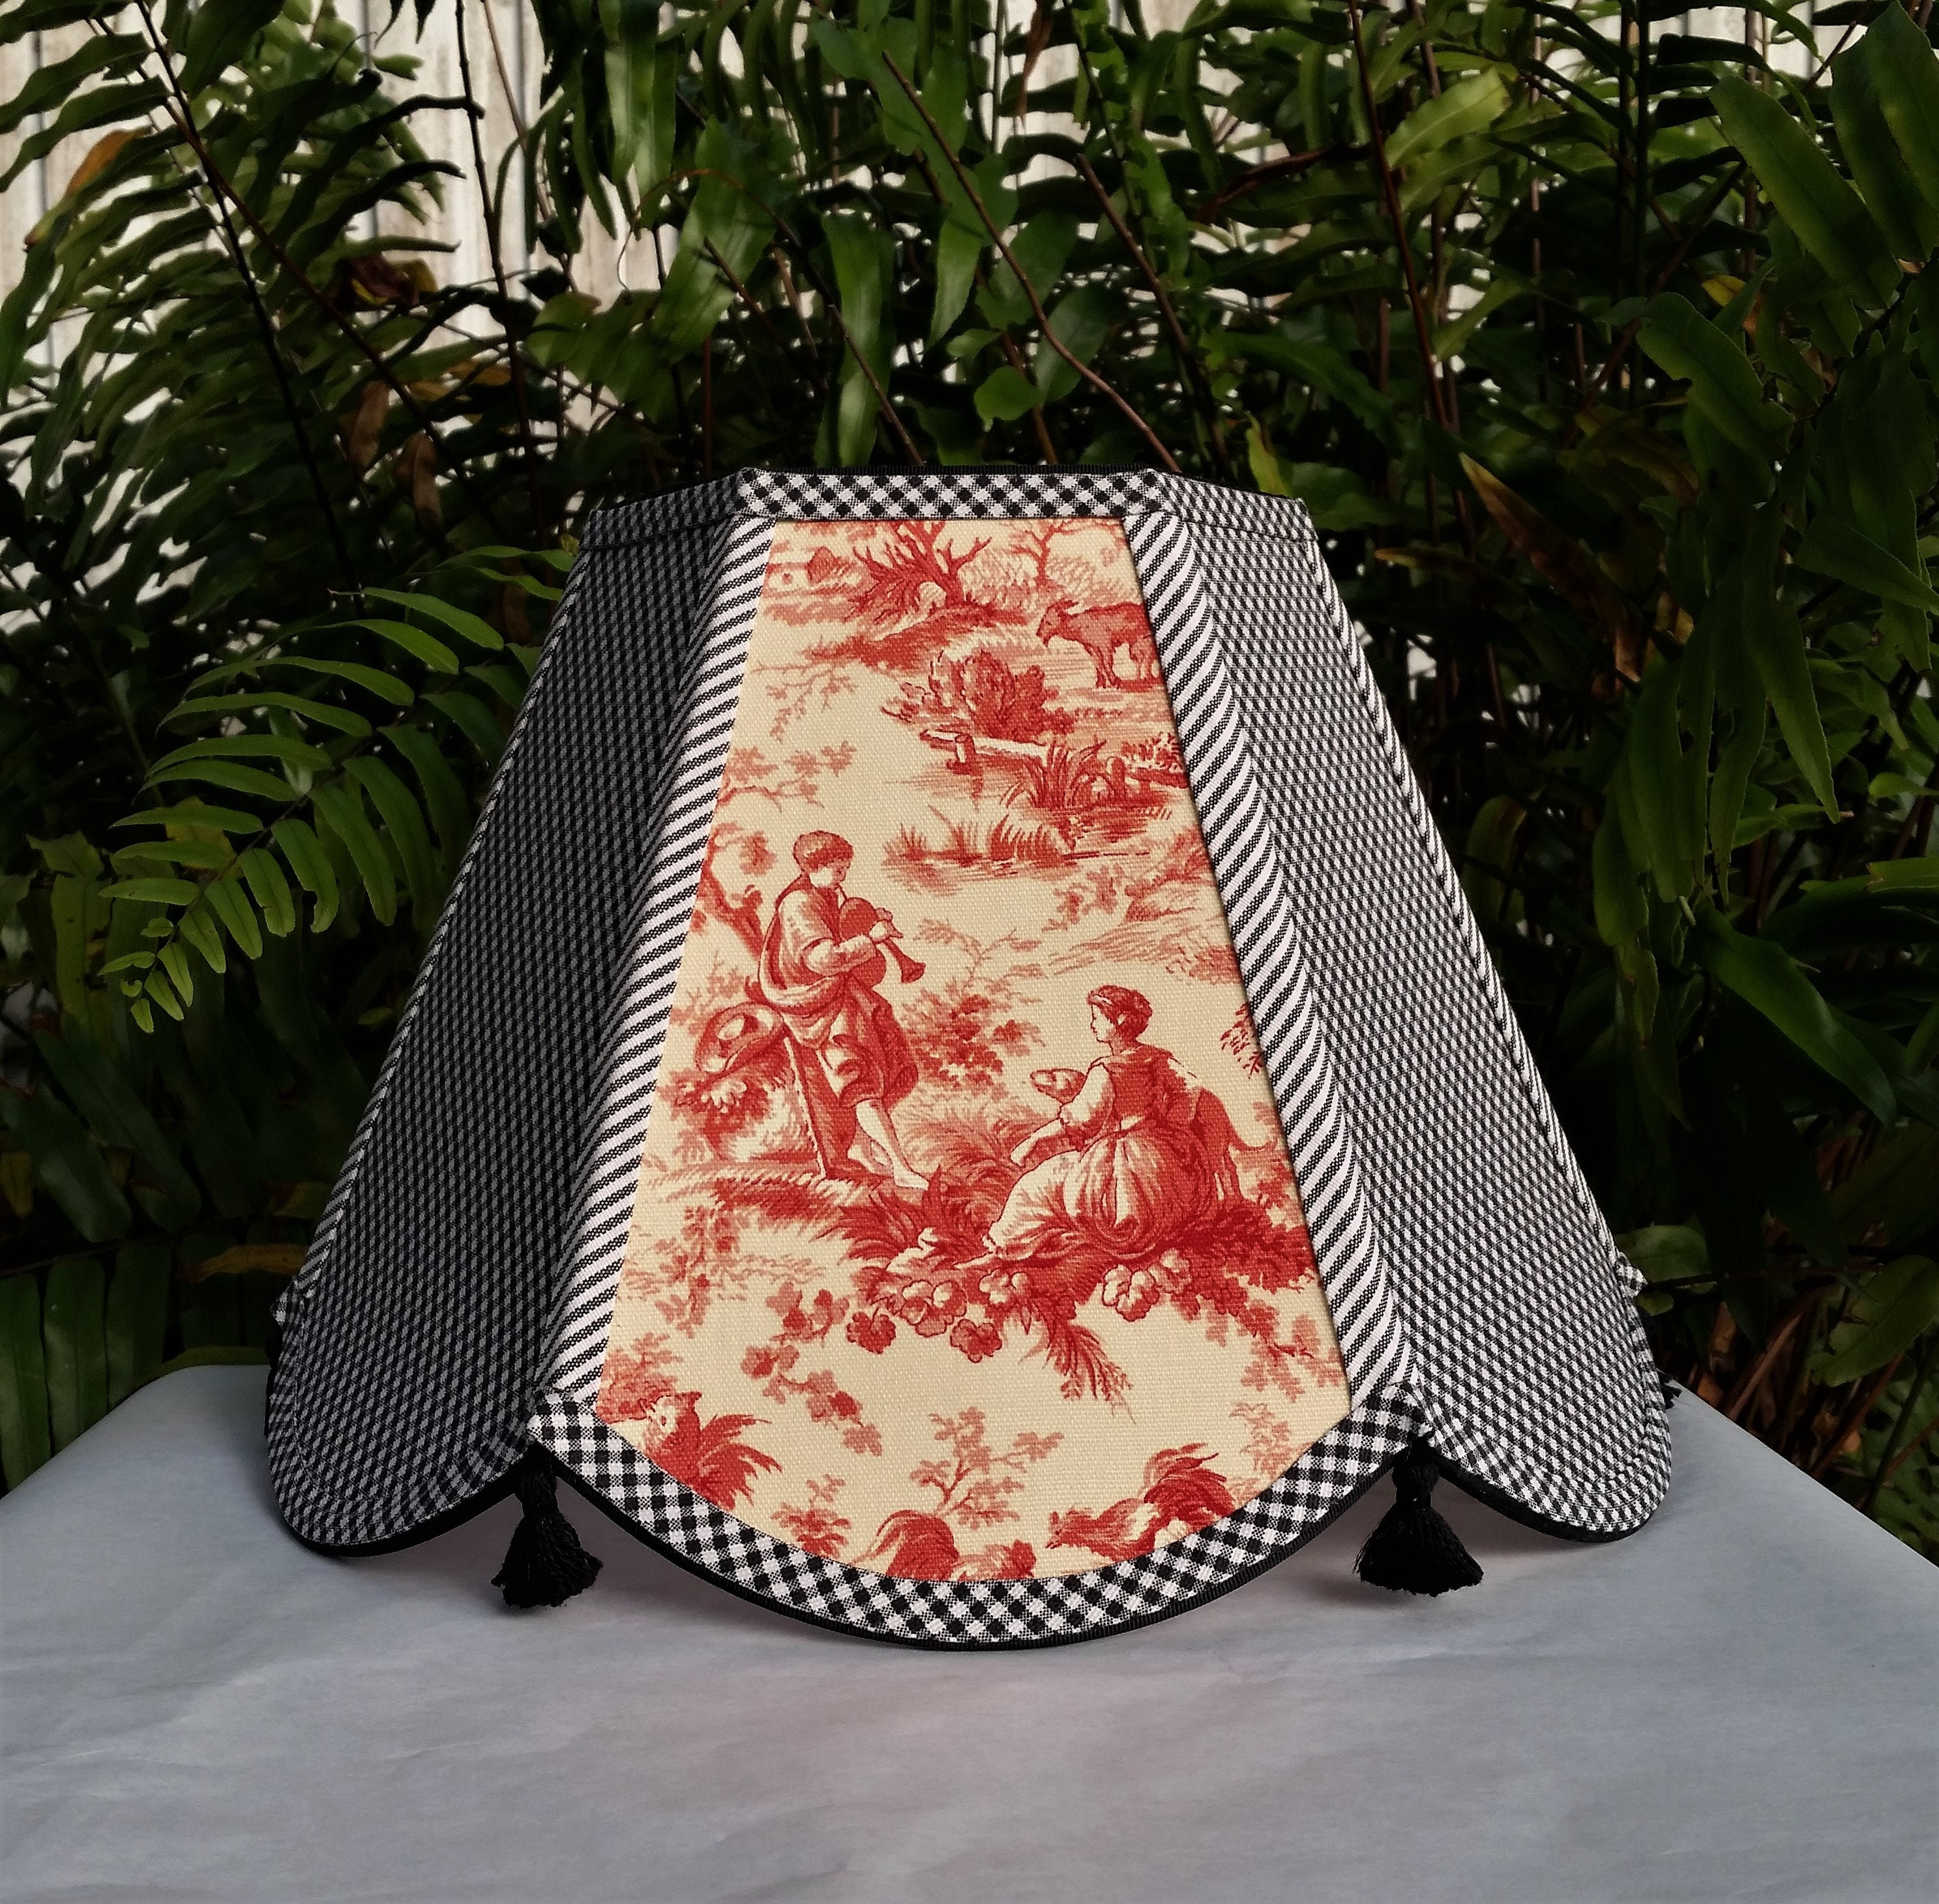 Toile lampshade check gingham black red yellow ivory hex bell toile lampshade check gingham black red yellow ivory hex bell large table lamp floor lamp custom handmade french country decor aloadofball Choice Image